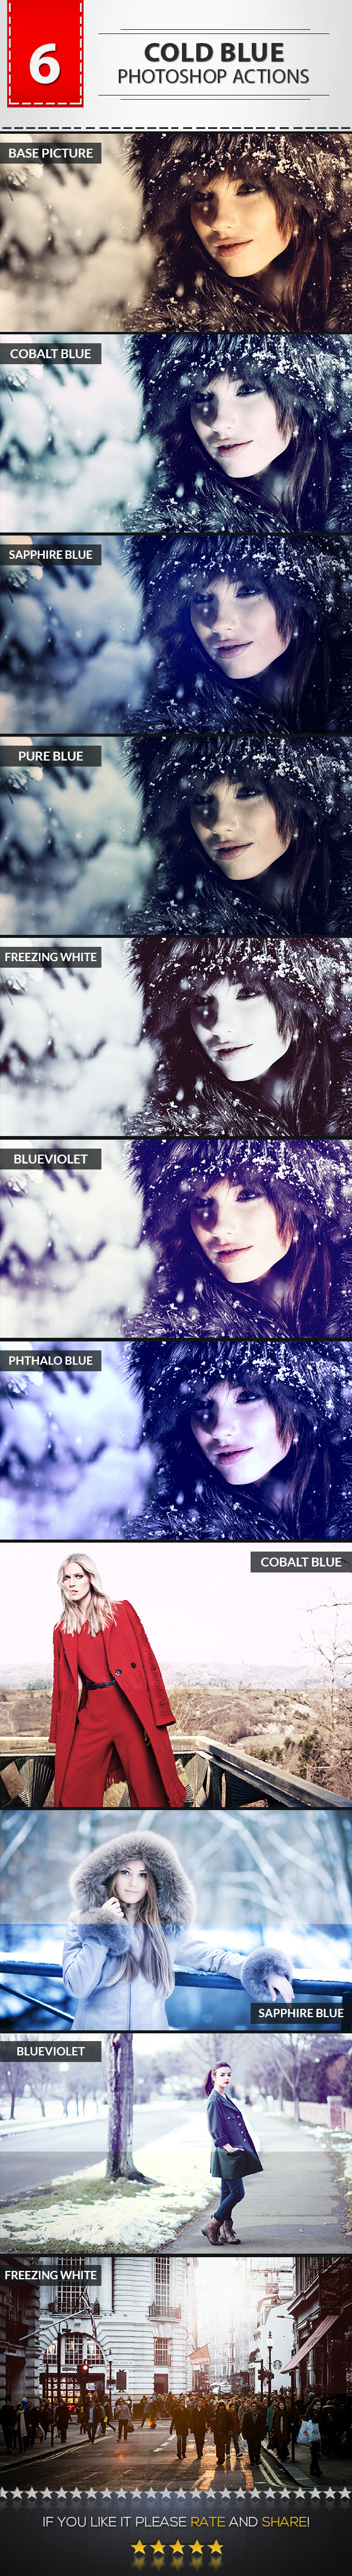 6 Cold Blue Photoshop Actions